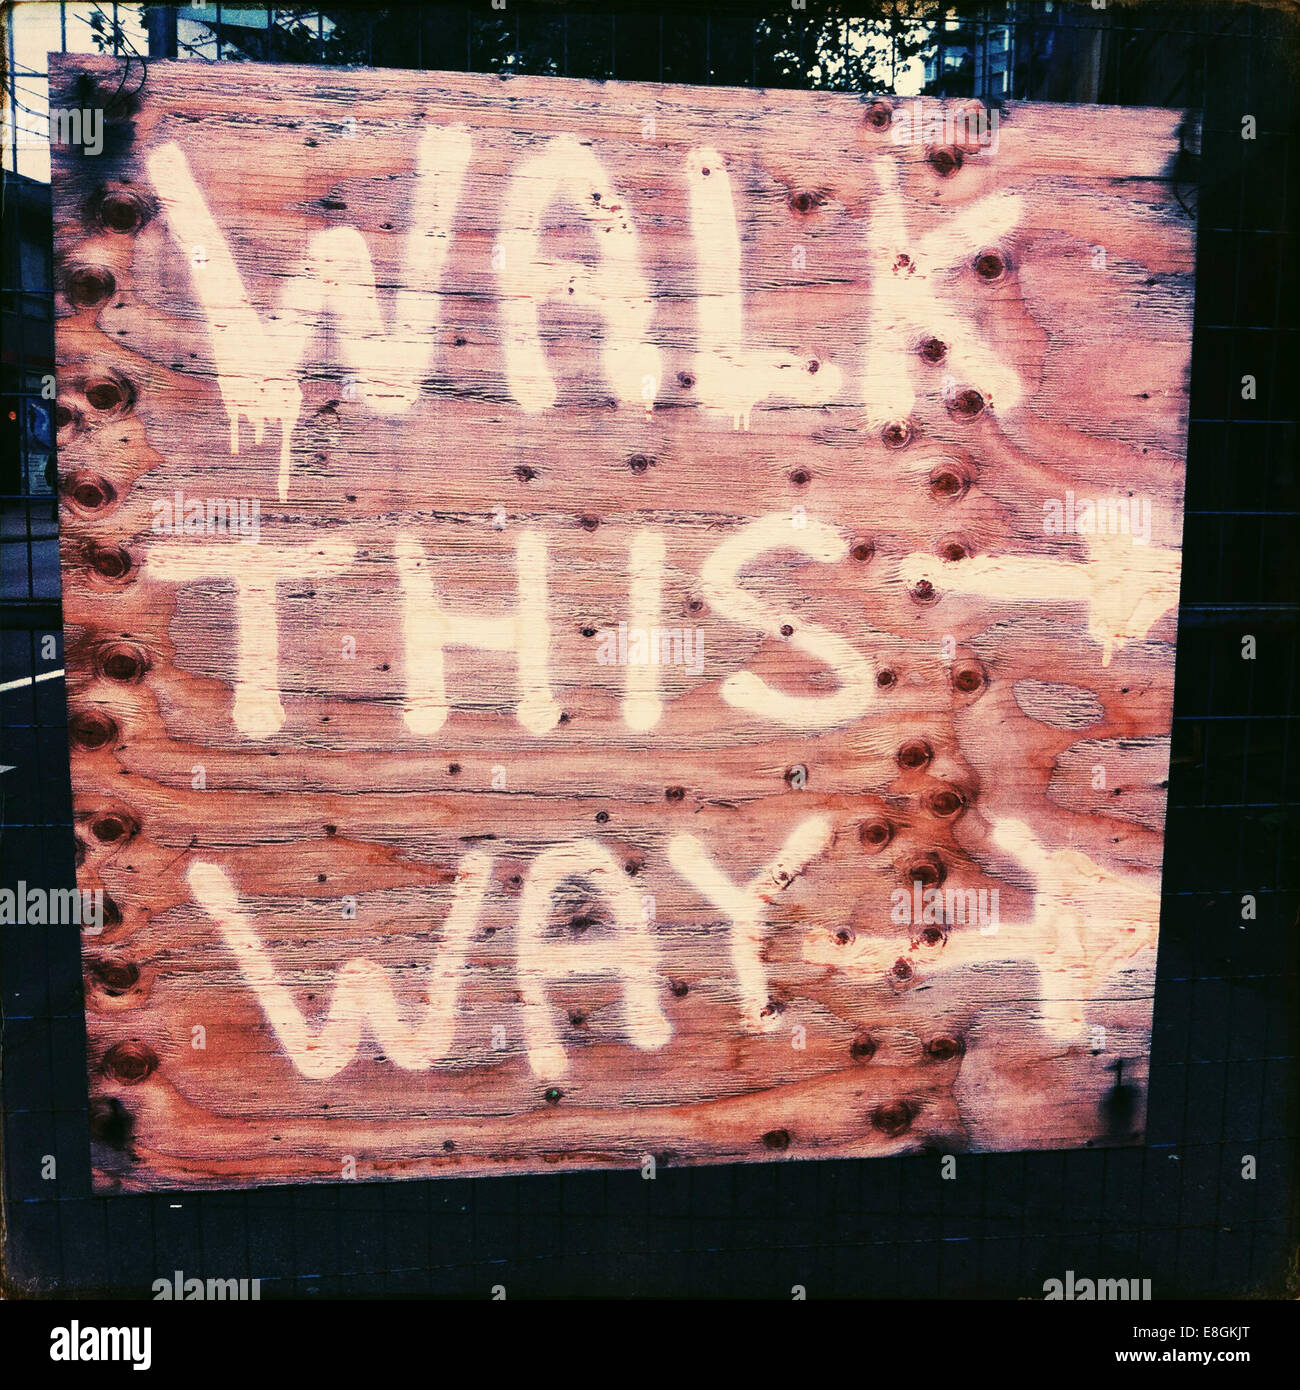 Walk this way Direction sign on sidewalk near construction site - Stock Image